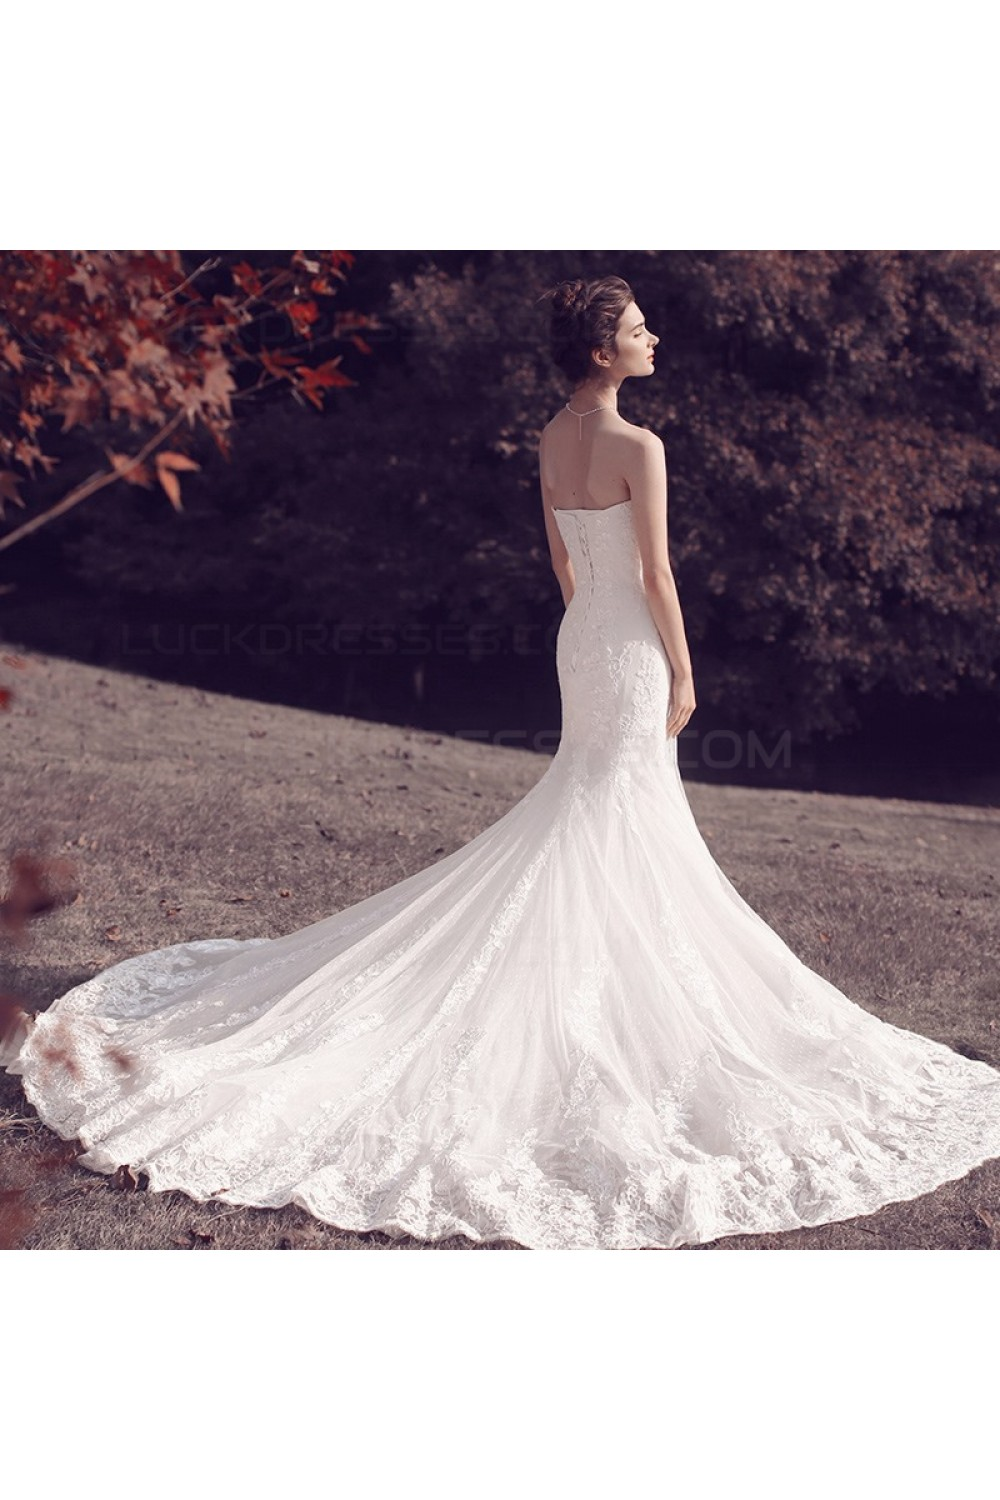 strapless mermaid wedding dresses mermaid strapless lace wedding dresses bridal gowns 3030097 7720